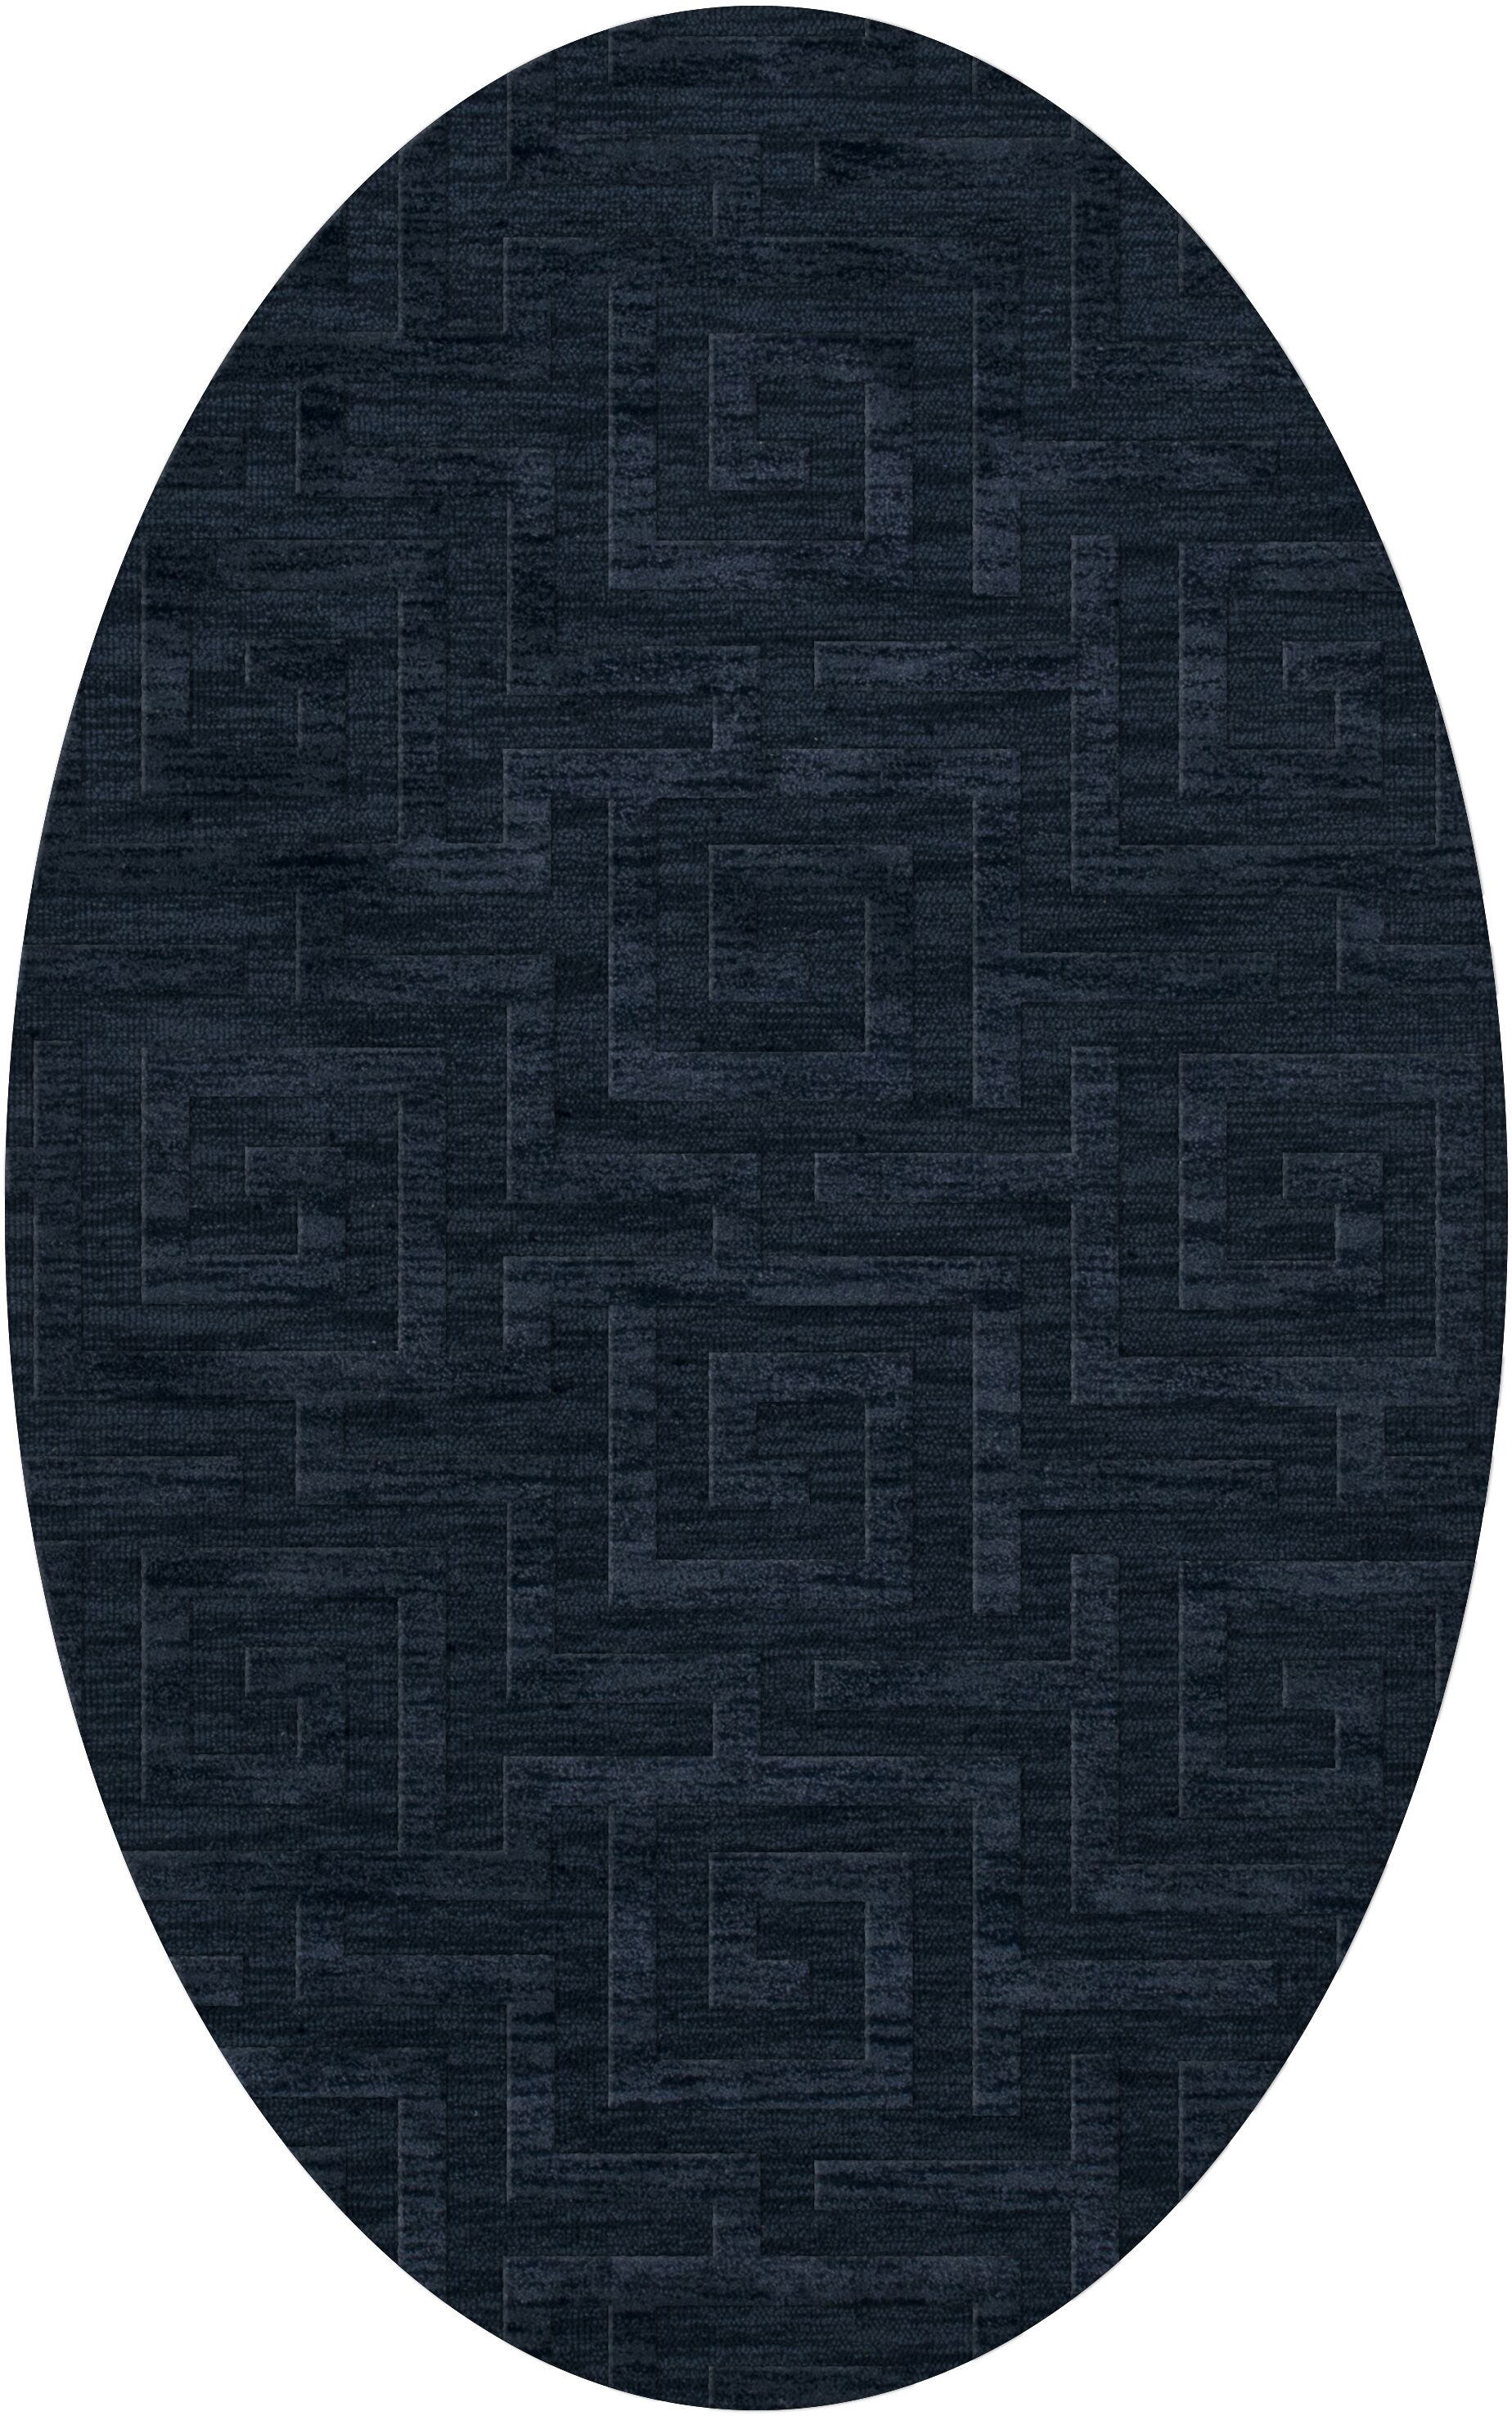 Dover Tufted Wool Navy Area Rug Rug Size: Oval 6' x 9'